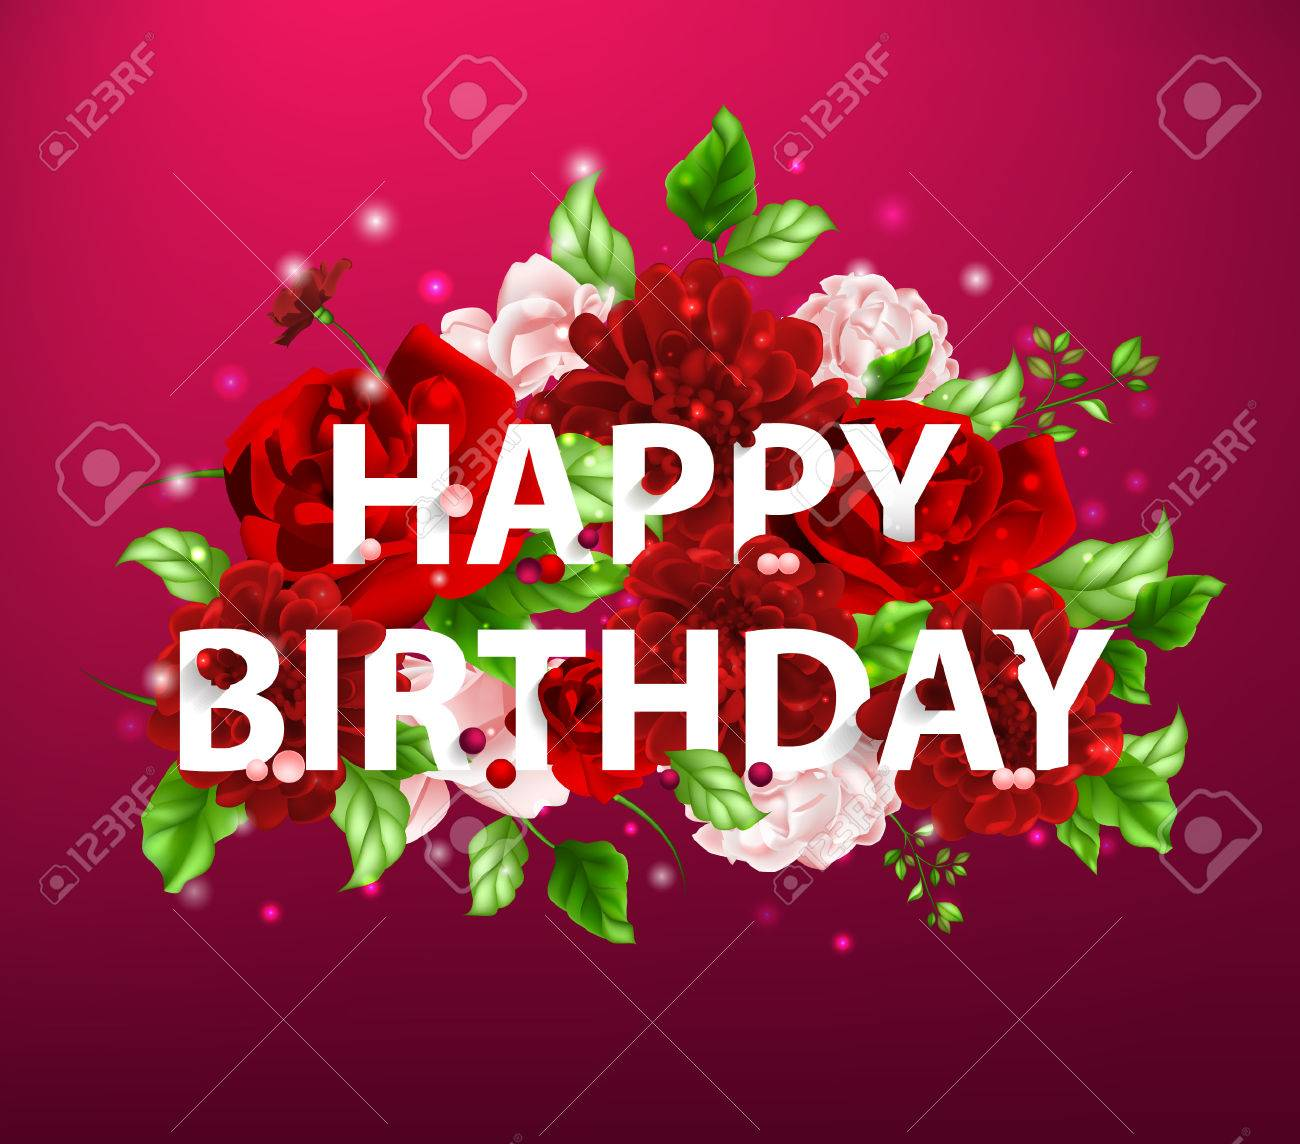 Stock Vector Illustration Of Flowers With Lettering Happy Birthday